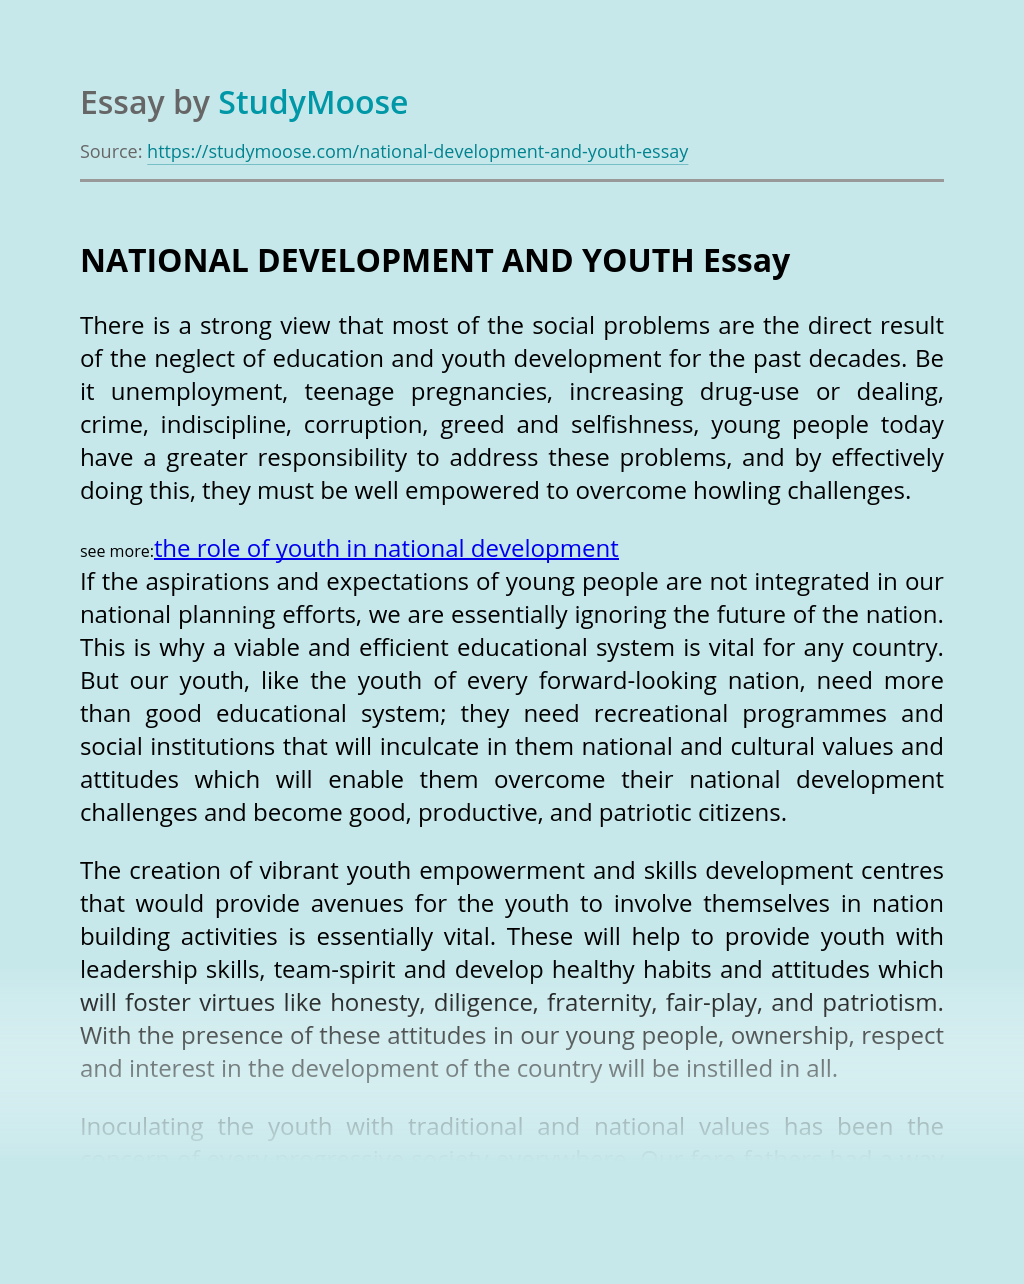 NATIONAL DEVELOPMENT AND YOUTH